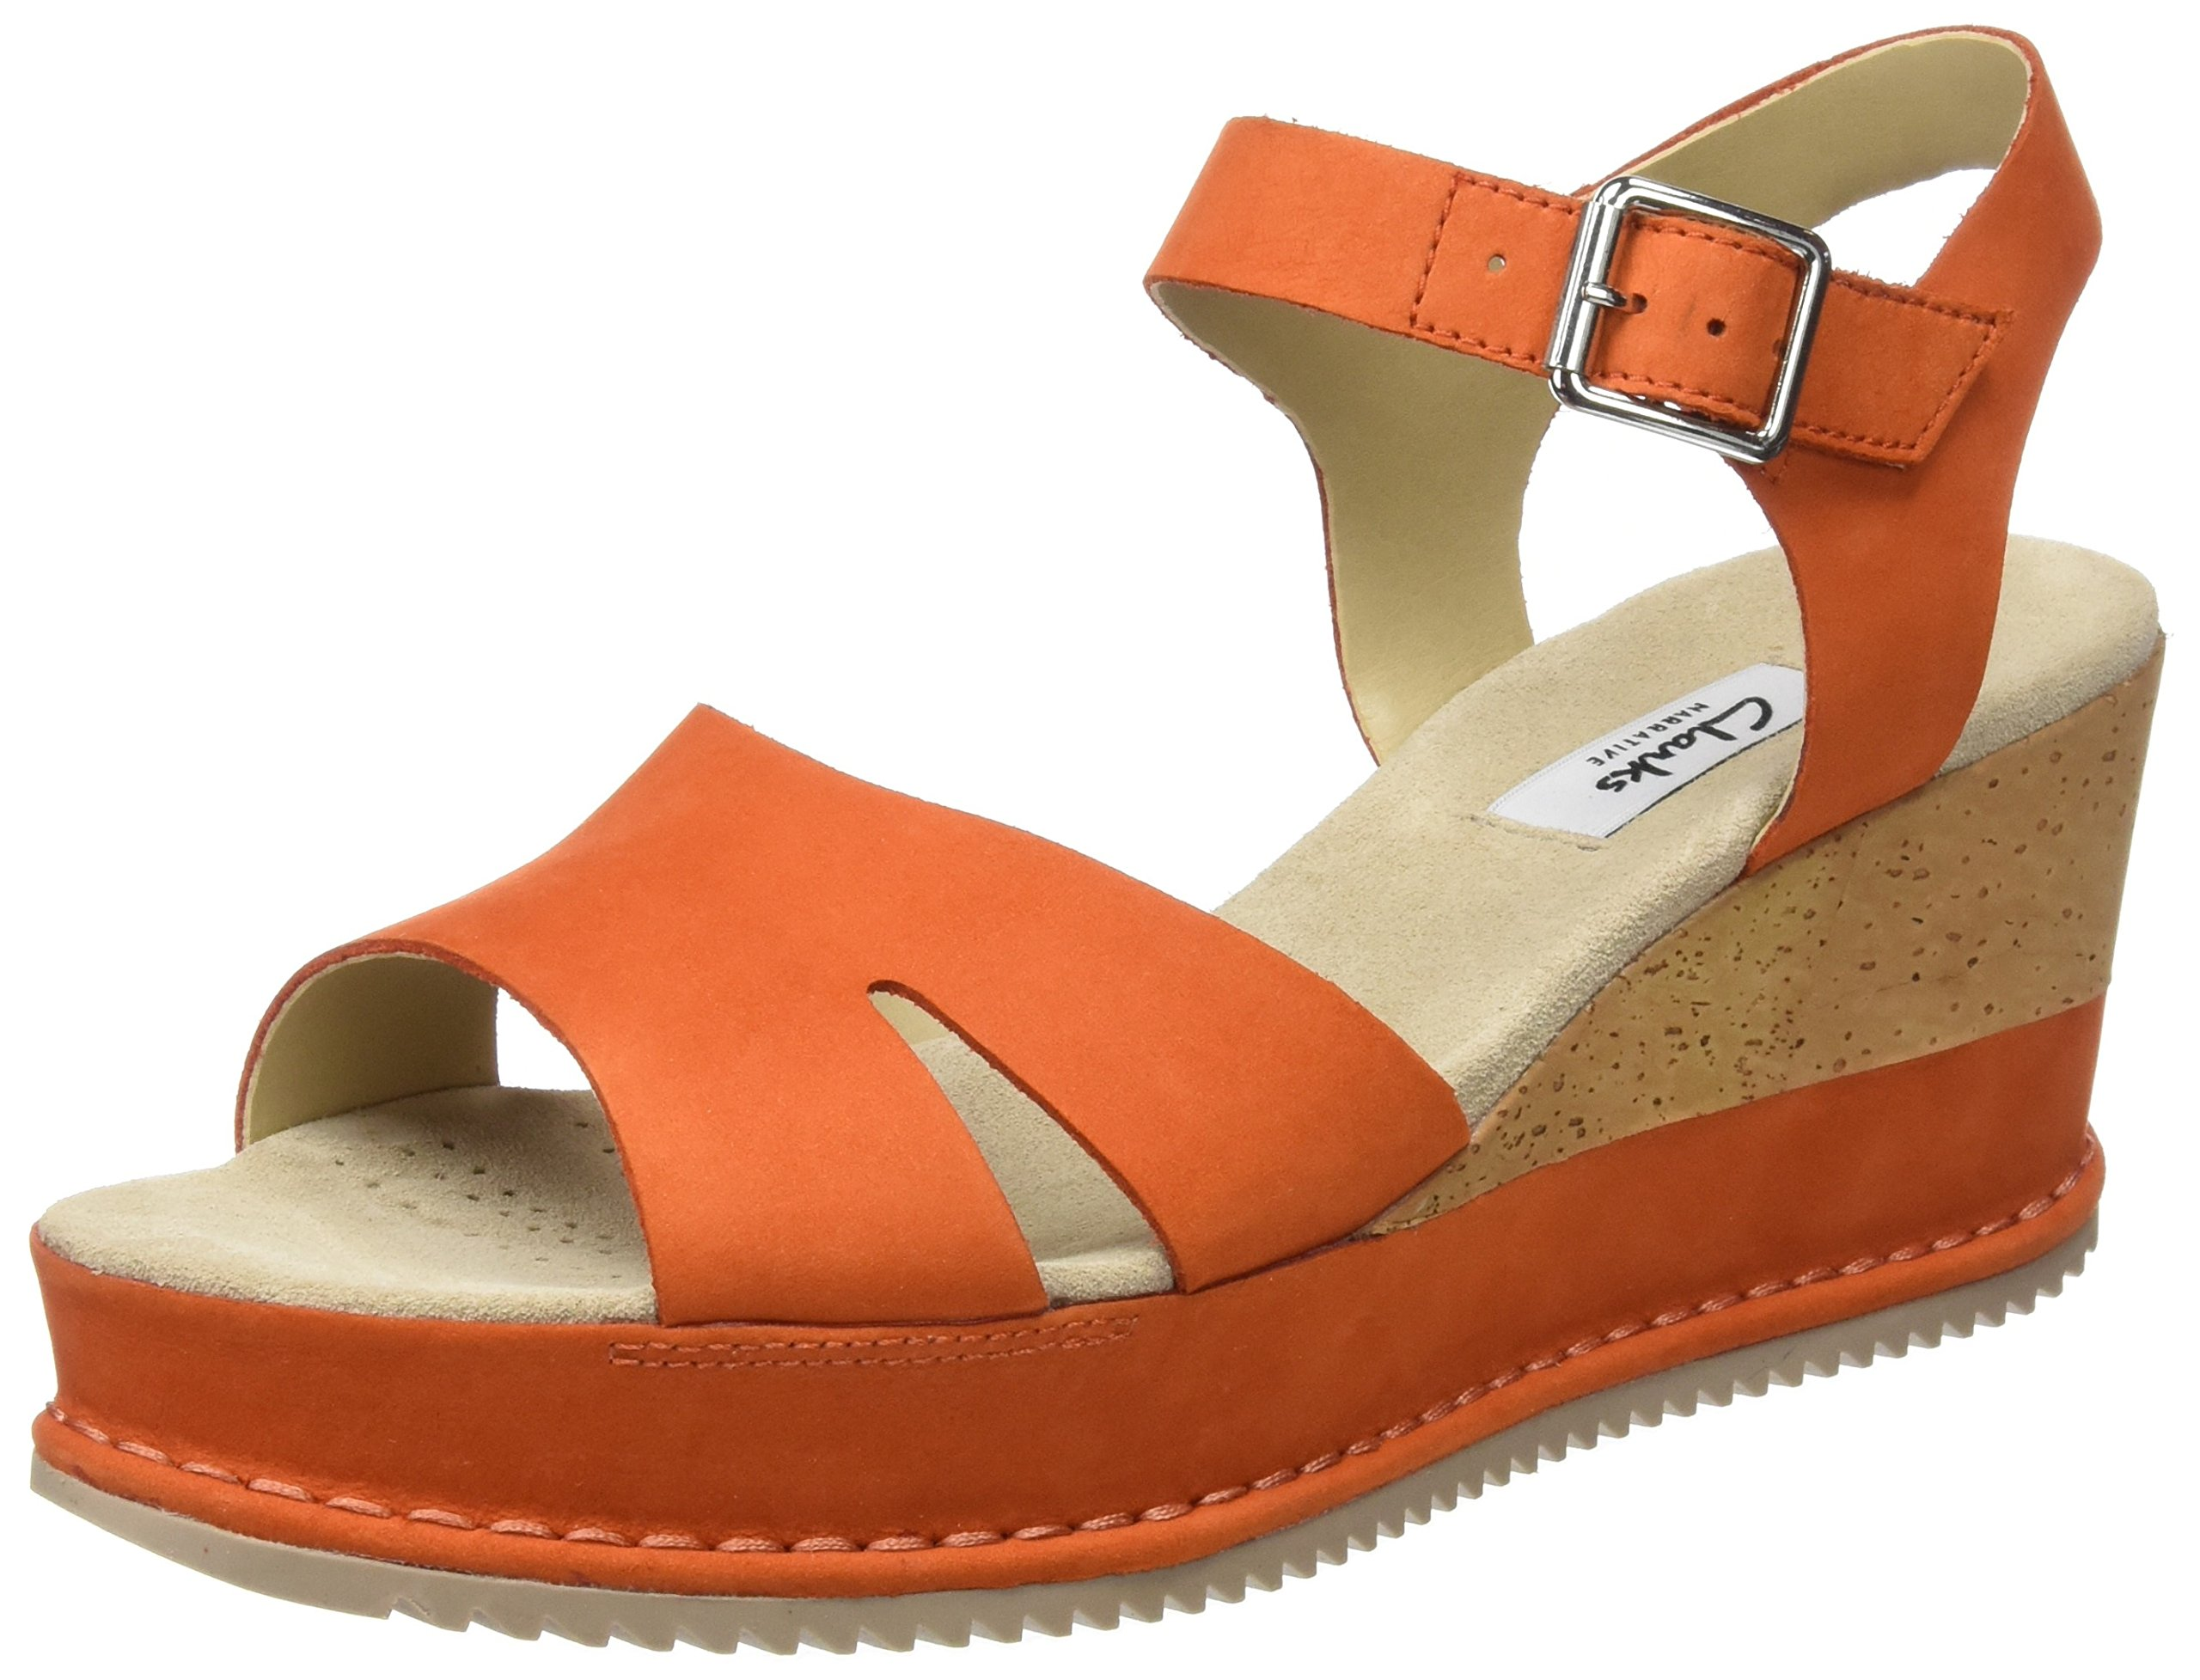 Clarks Women's Akilah Eden Nubuck Leather Fashion Sandals